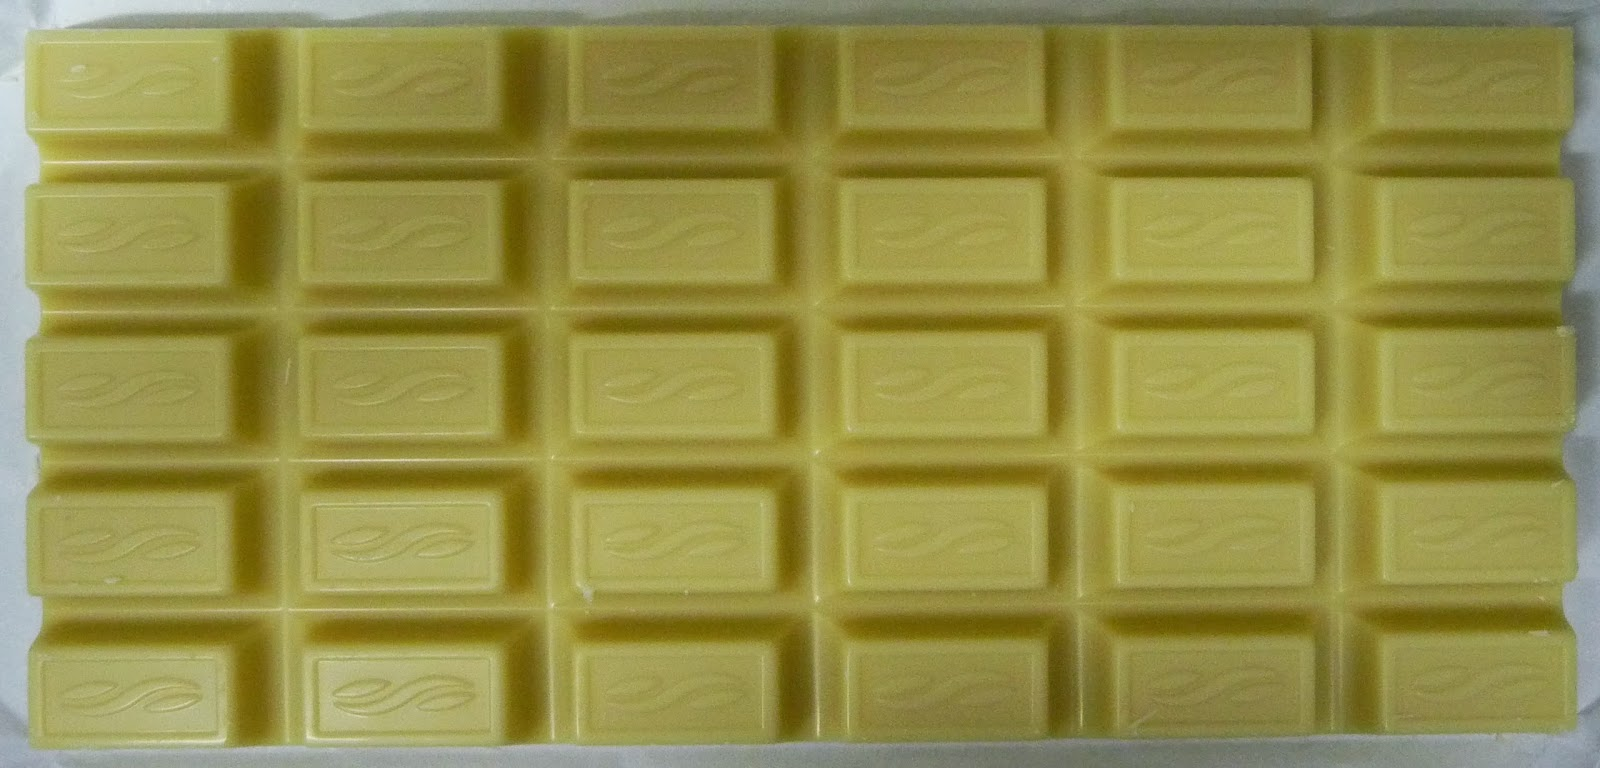 Something to look forward to: Choceur Smooth White